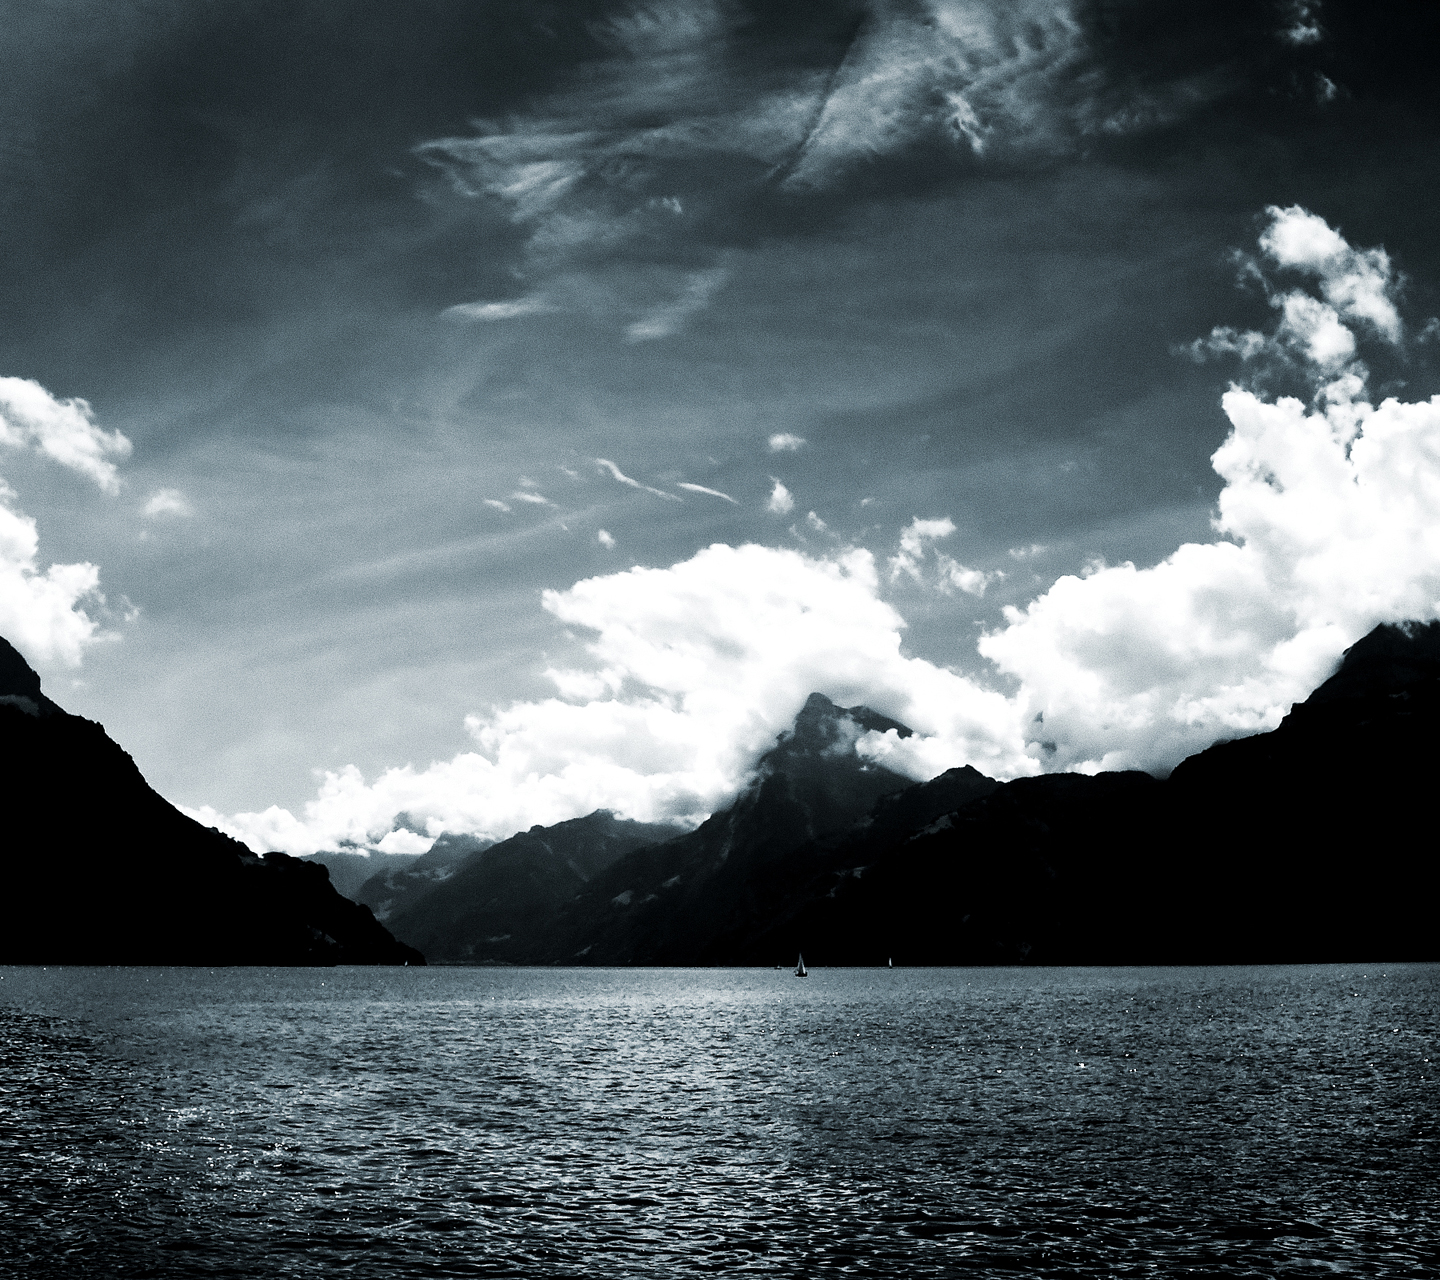 galaxy s3 wallpaper - black and white lake - hd wallpapers